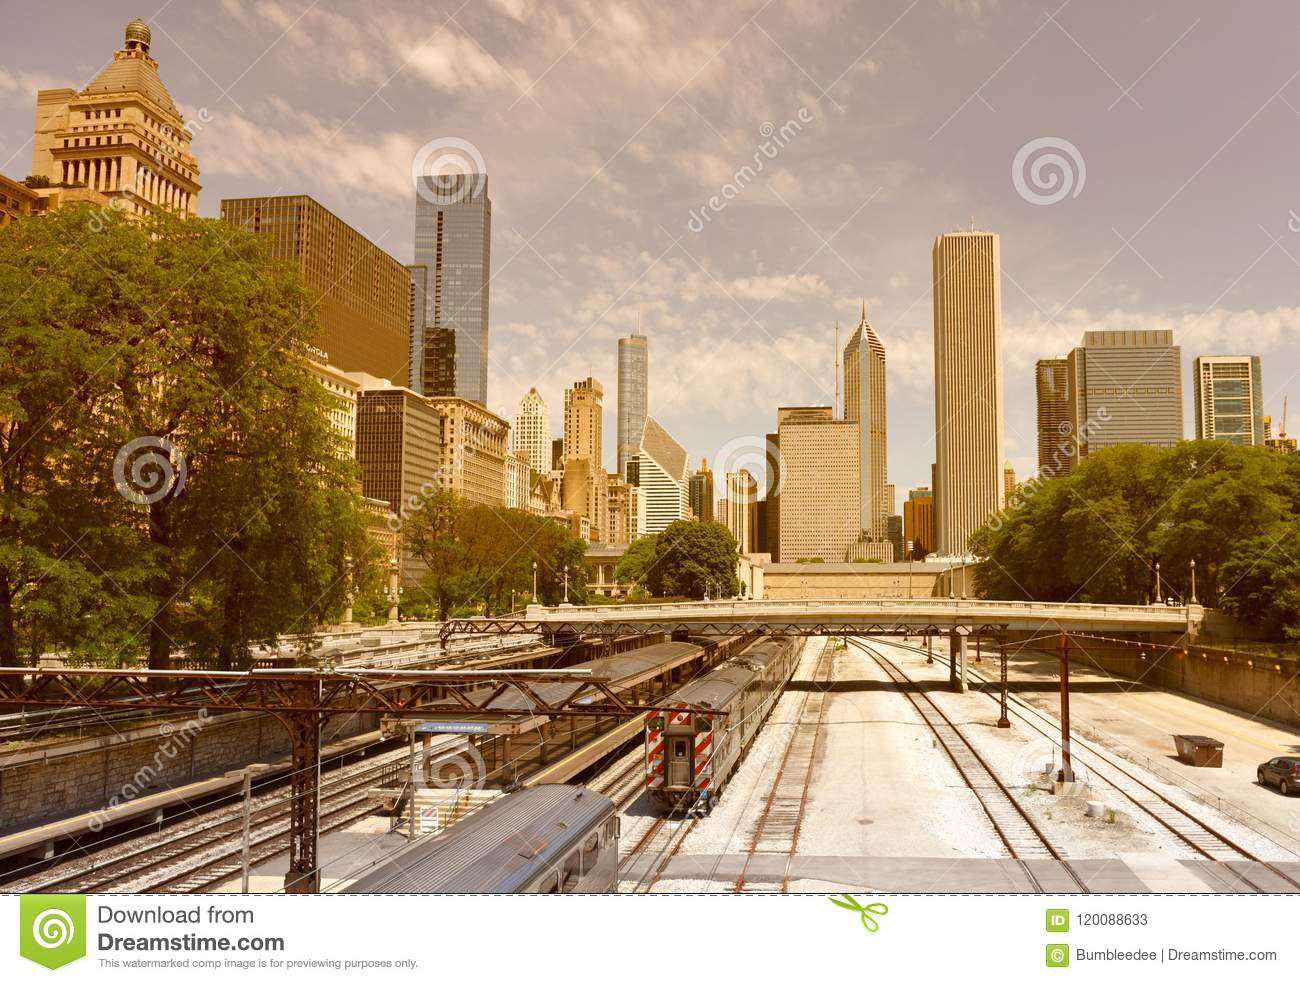 Chicago Cityscape With A Trains On The Station In Downtown , US